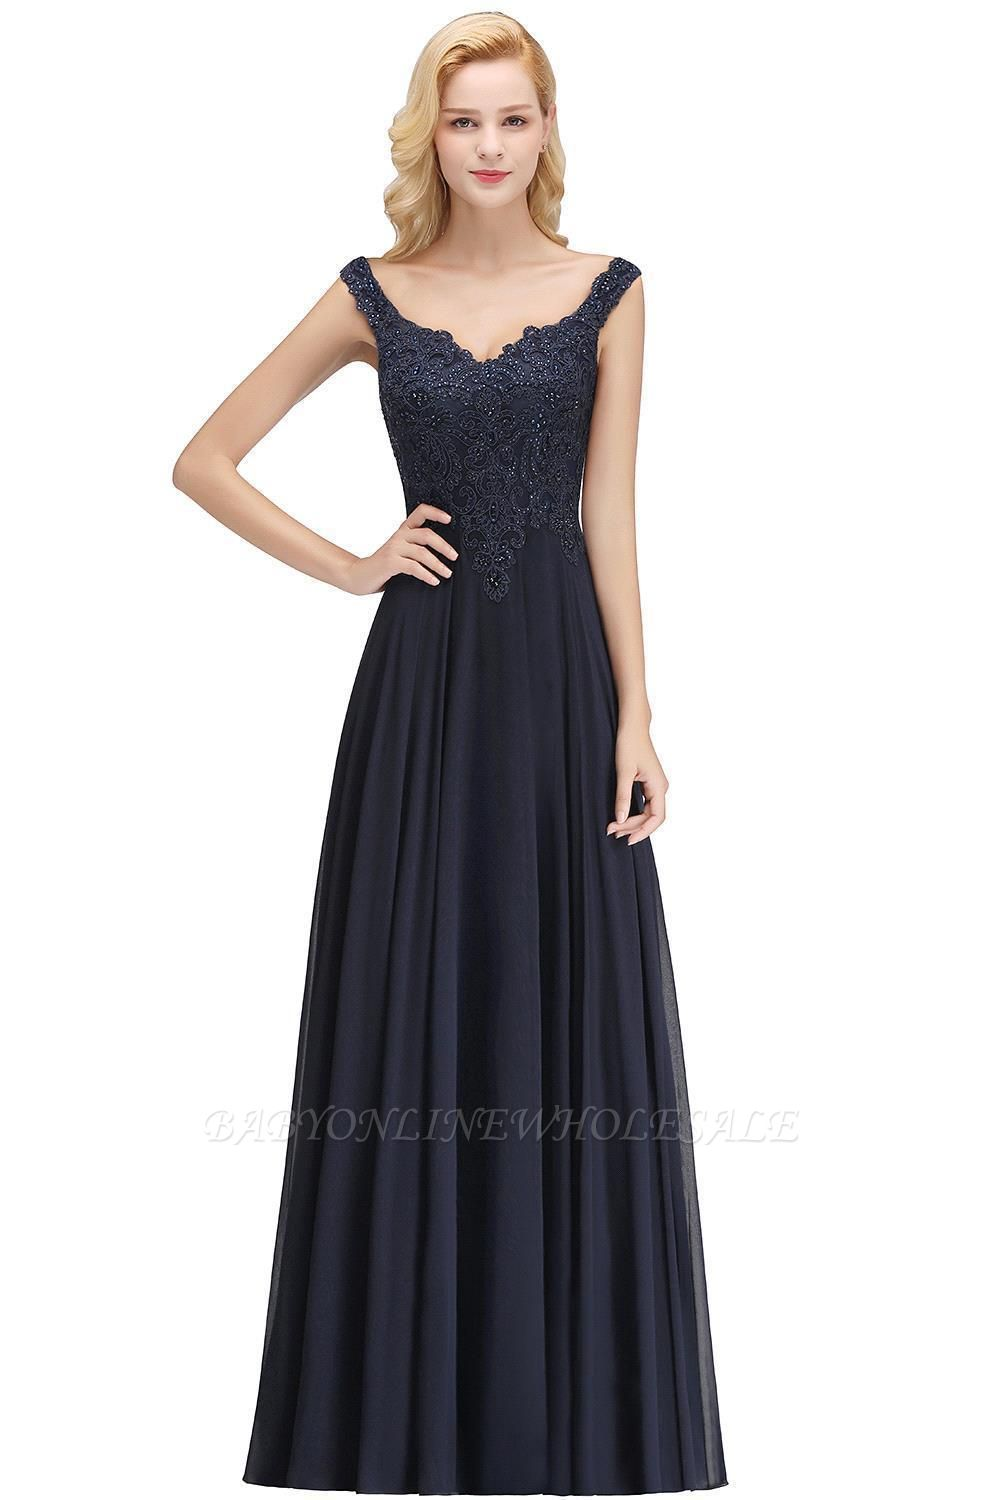 Elegant Off the shoulder Navy Long evening Dress with Soft Pleats evening dresses under $50